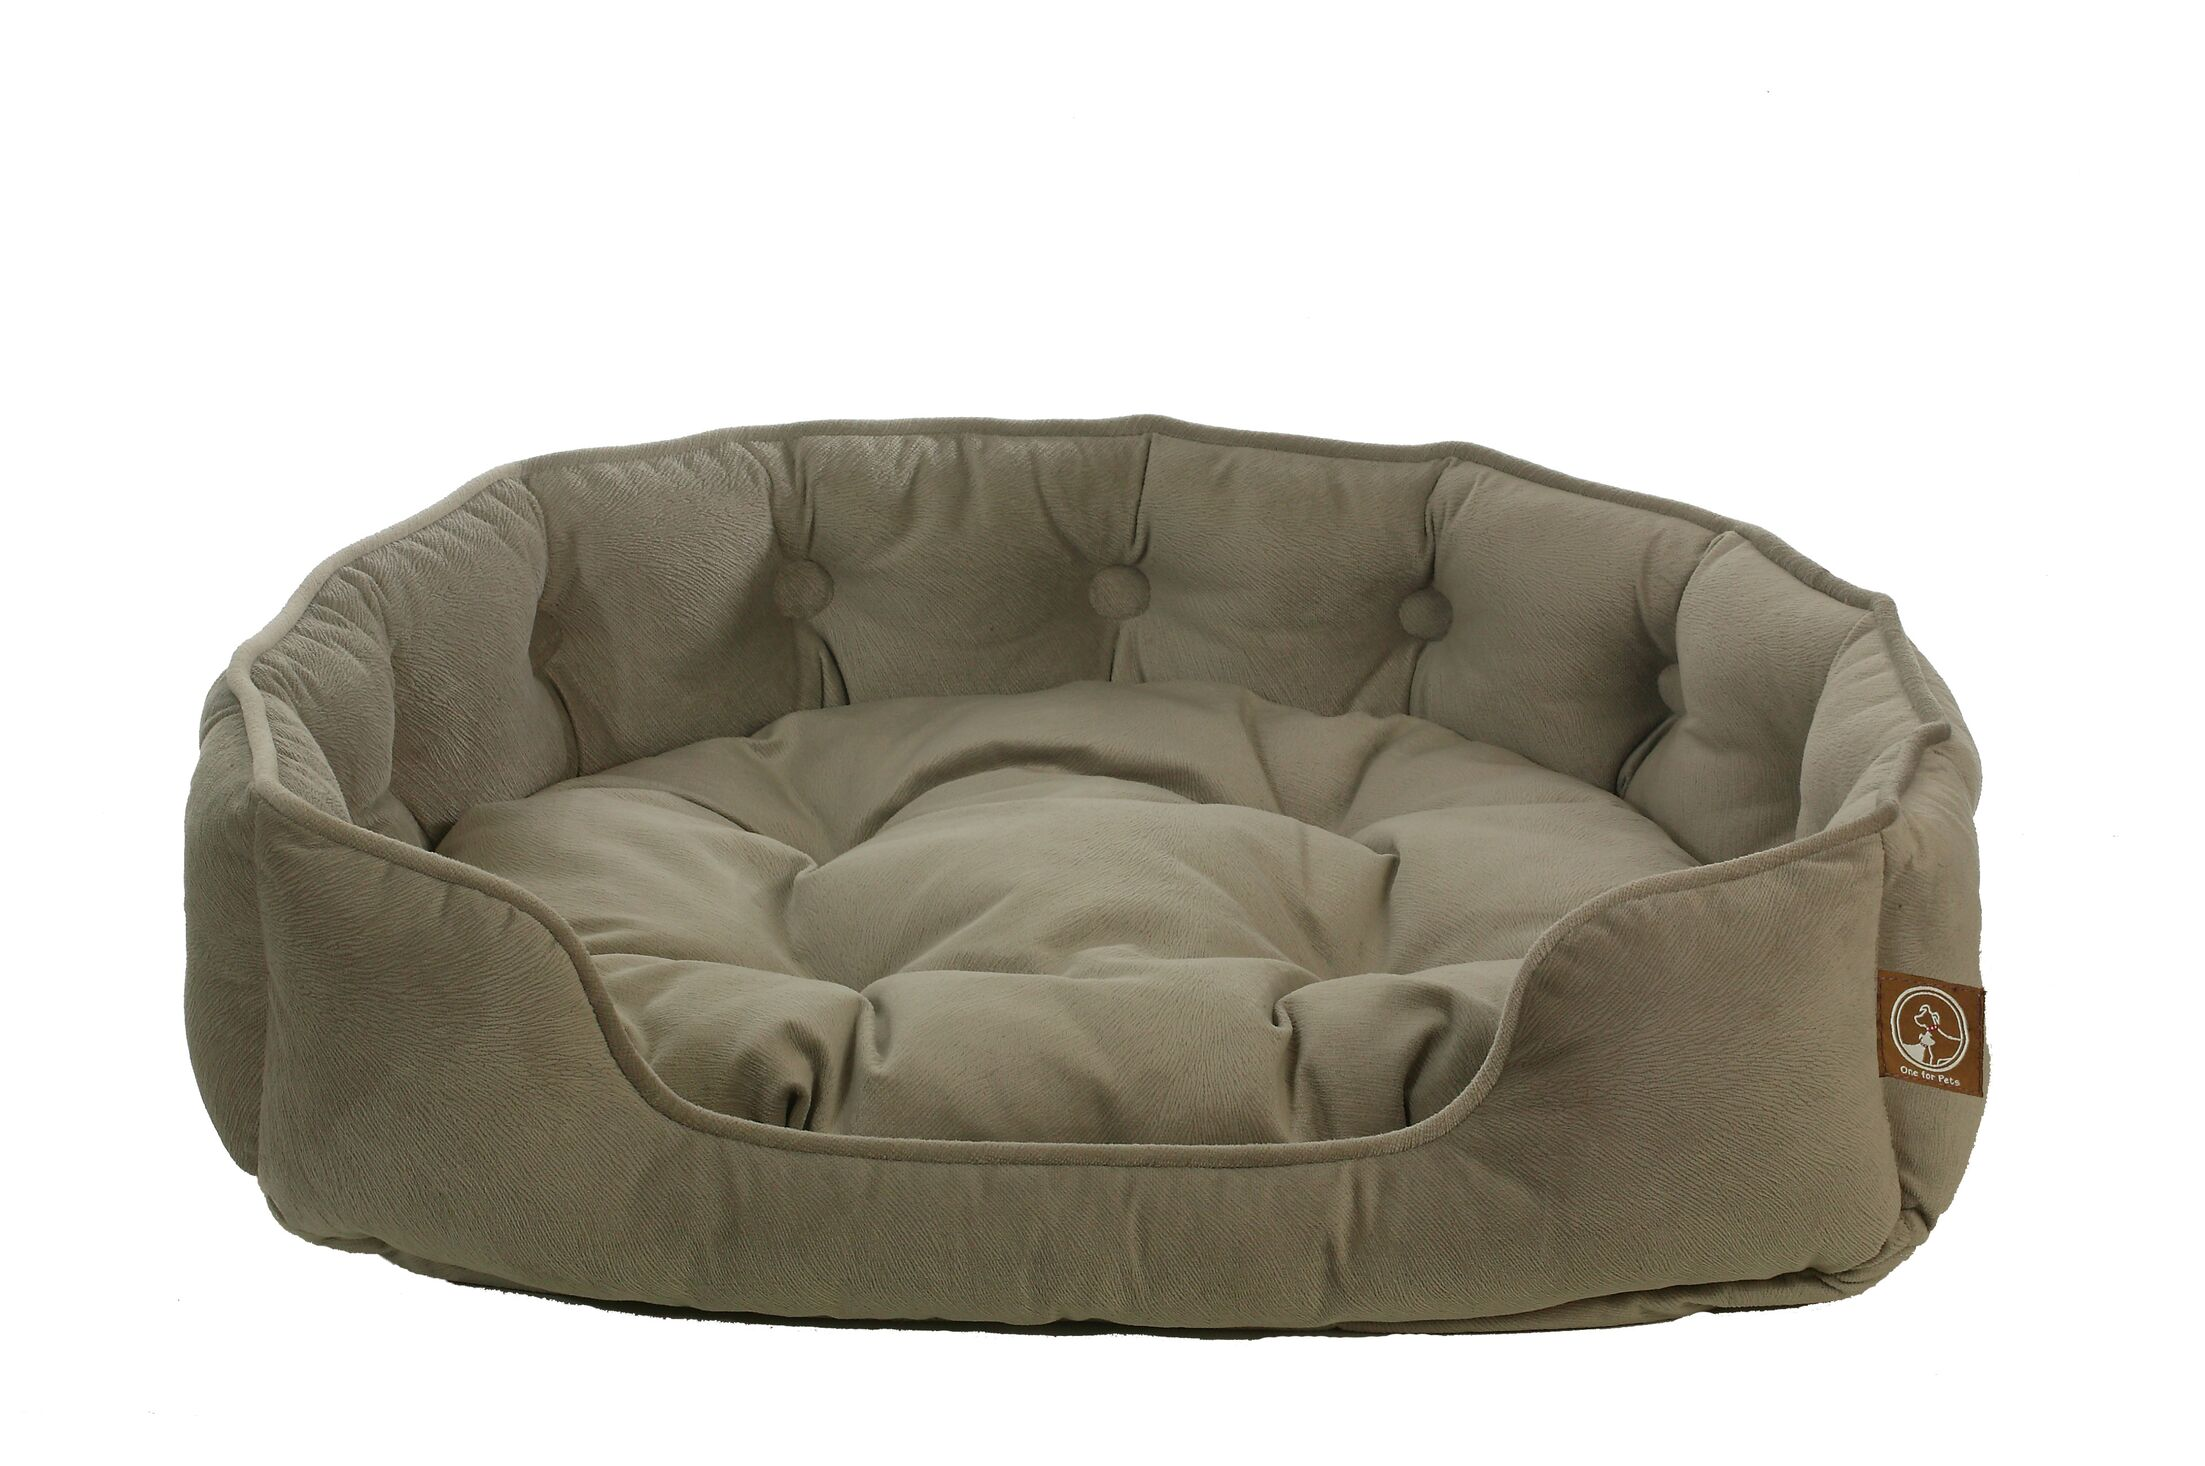 Faux Suede Snuggle Bolster Dog Bed Size: Small (21